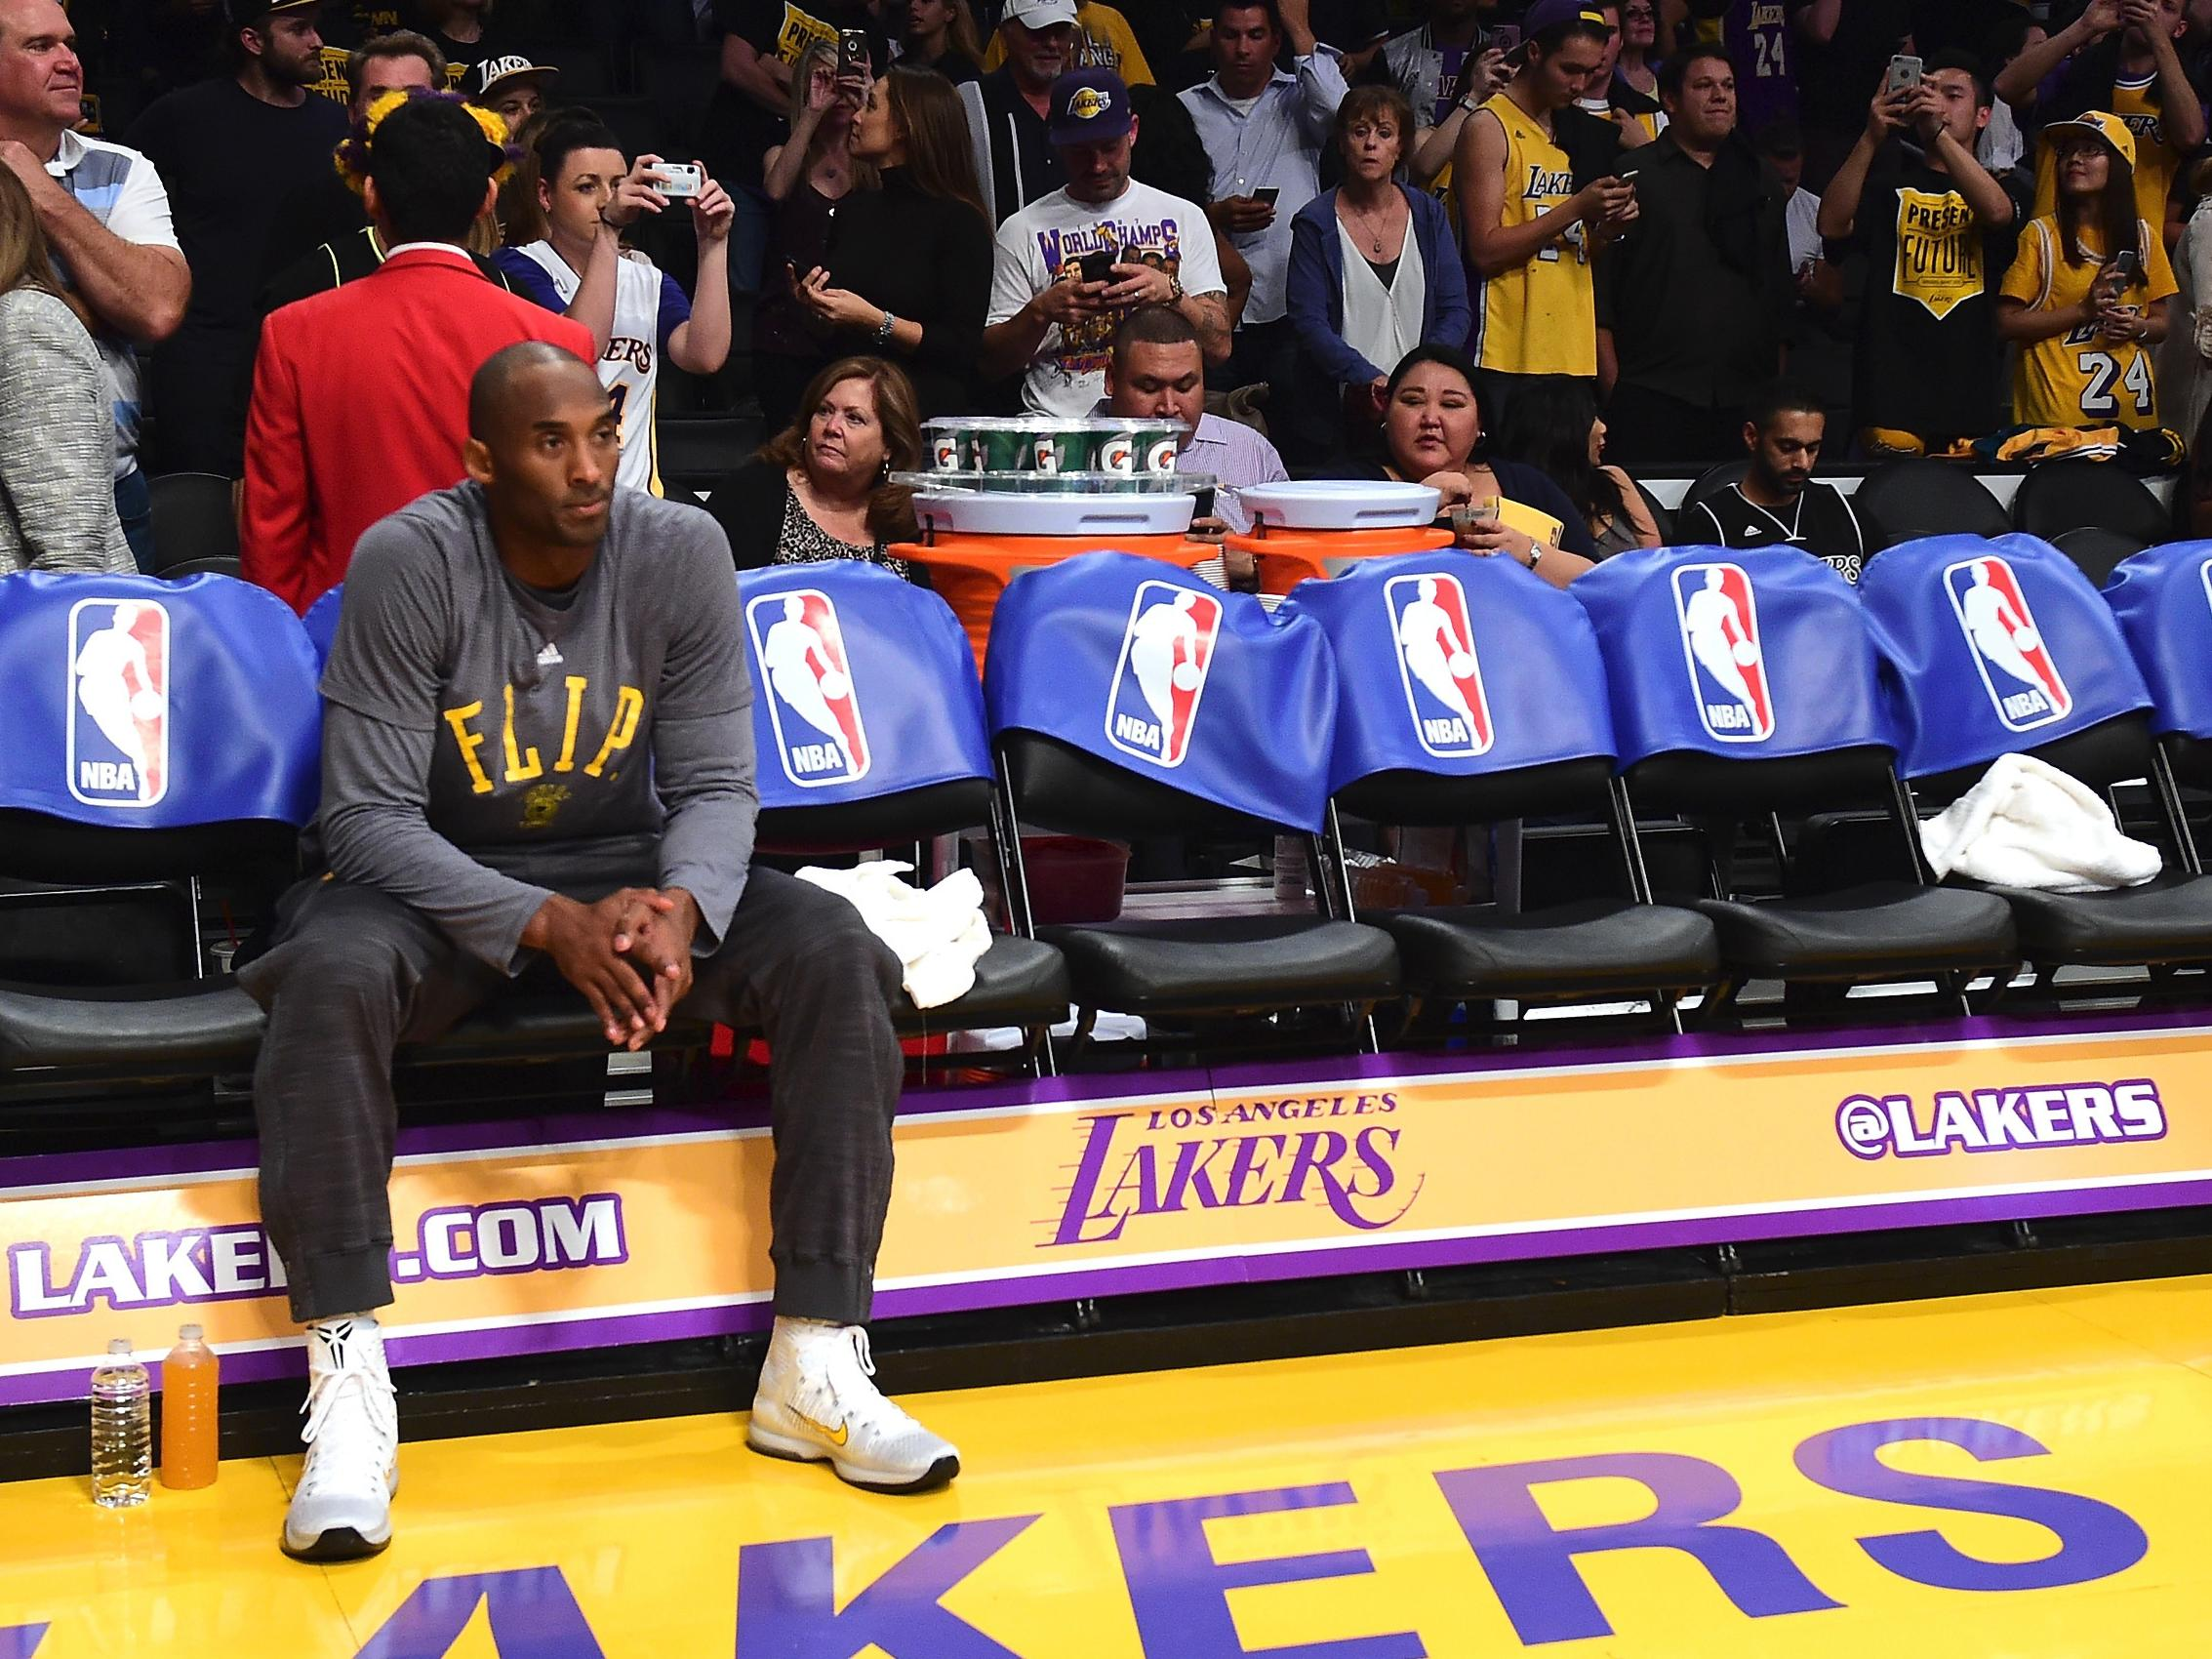 Kobe Bryant announces he will retire at the end of the season